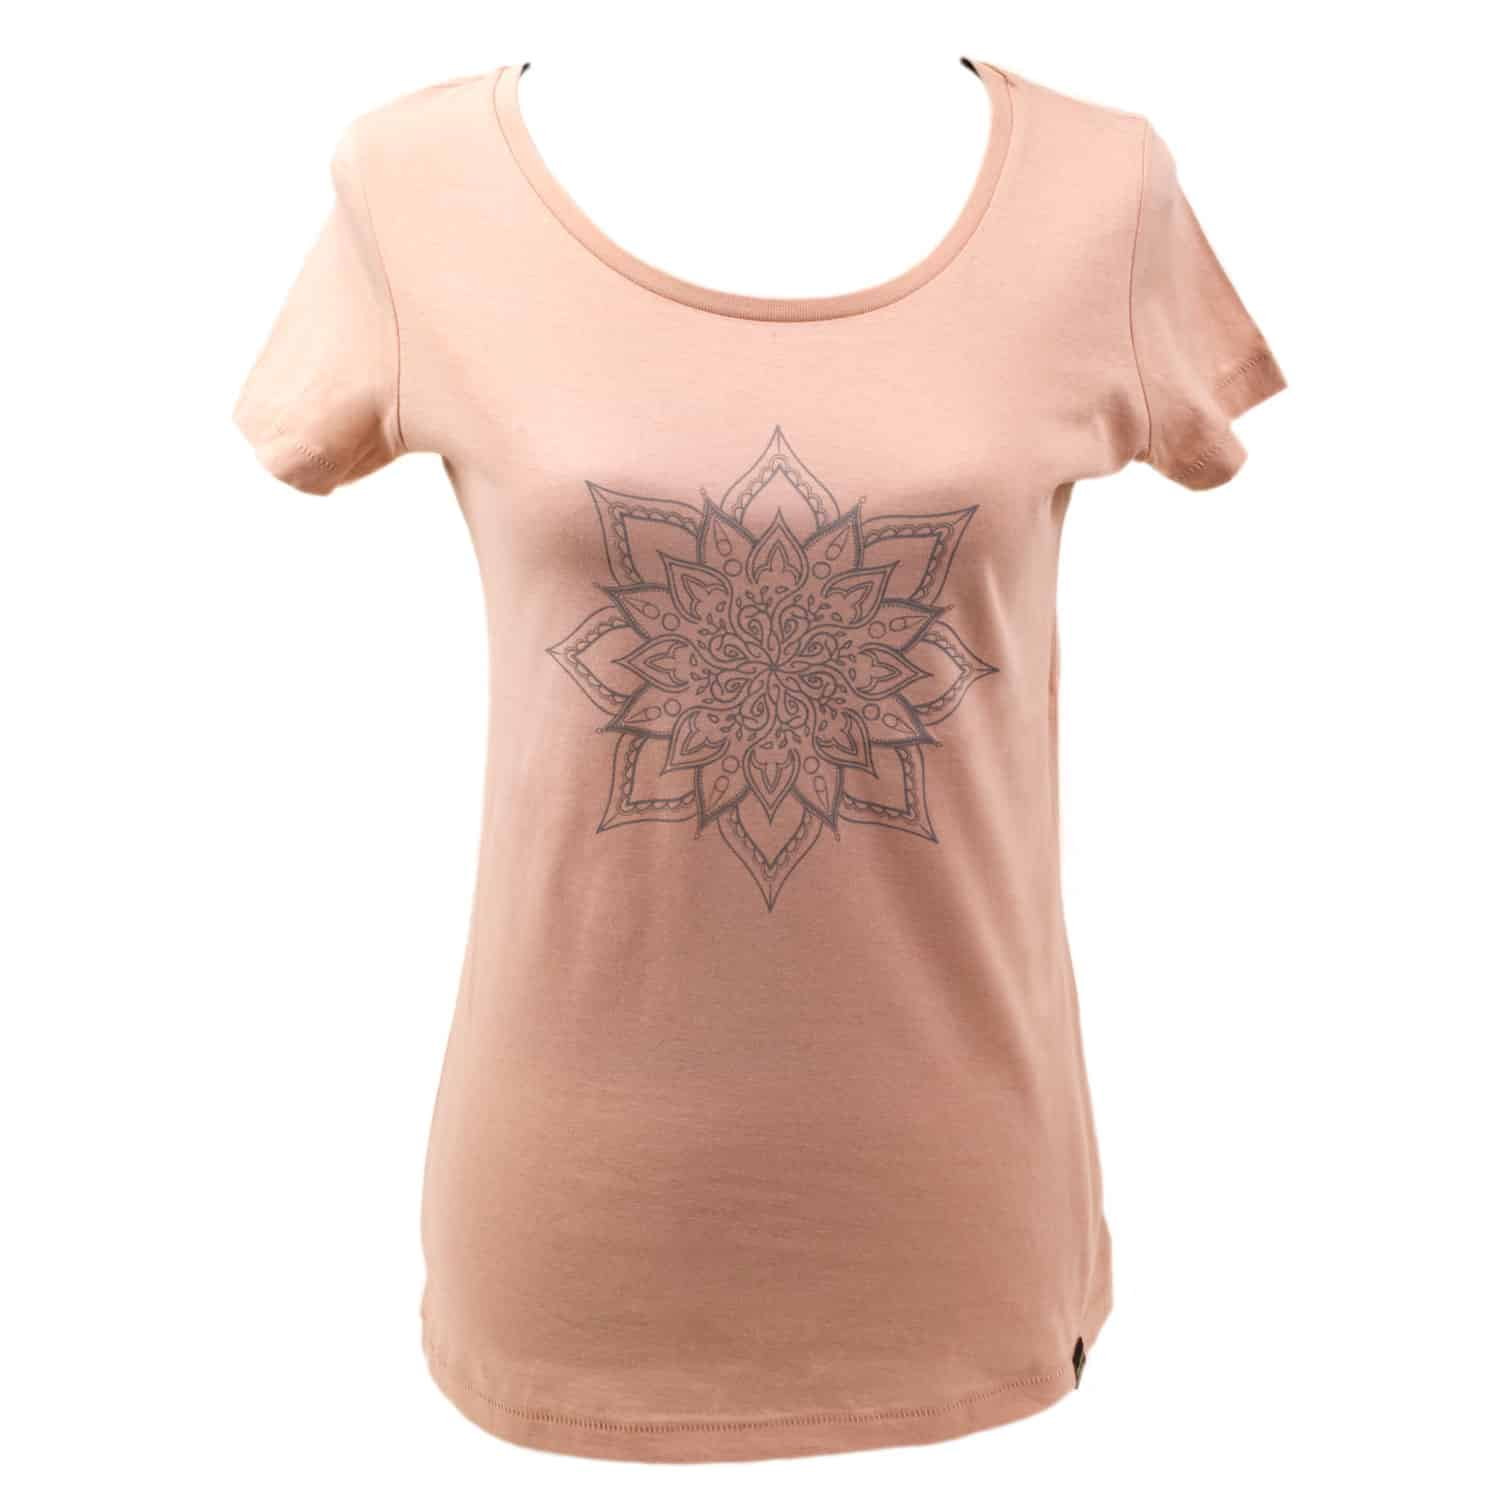 Yoga t-shirt Eco Vegan - Mandala Rose